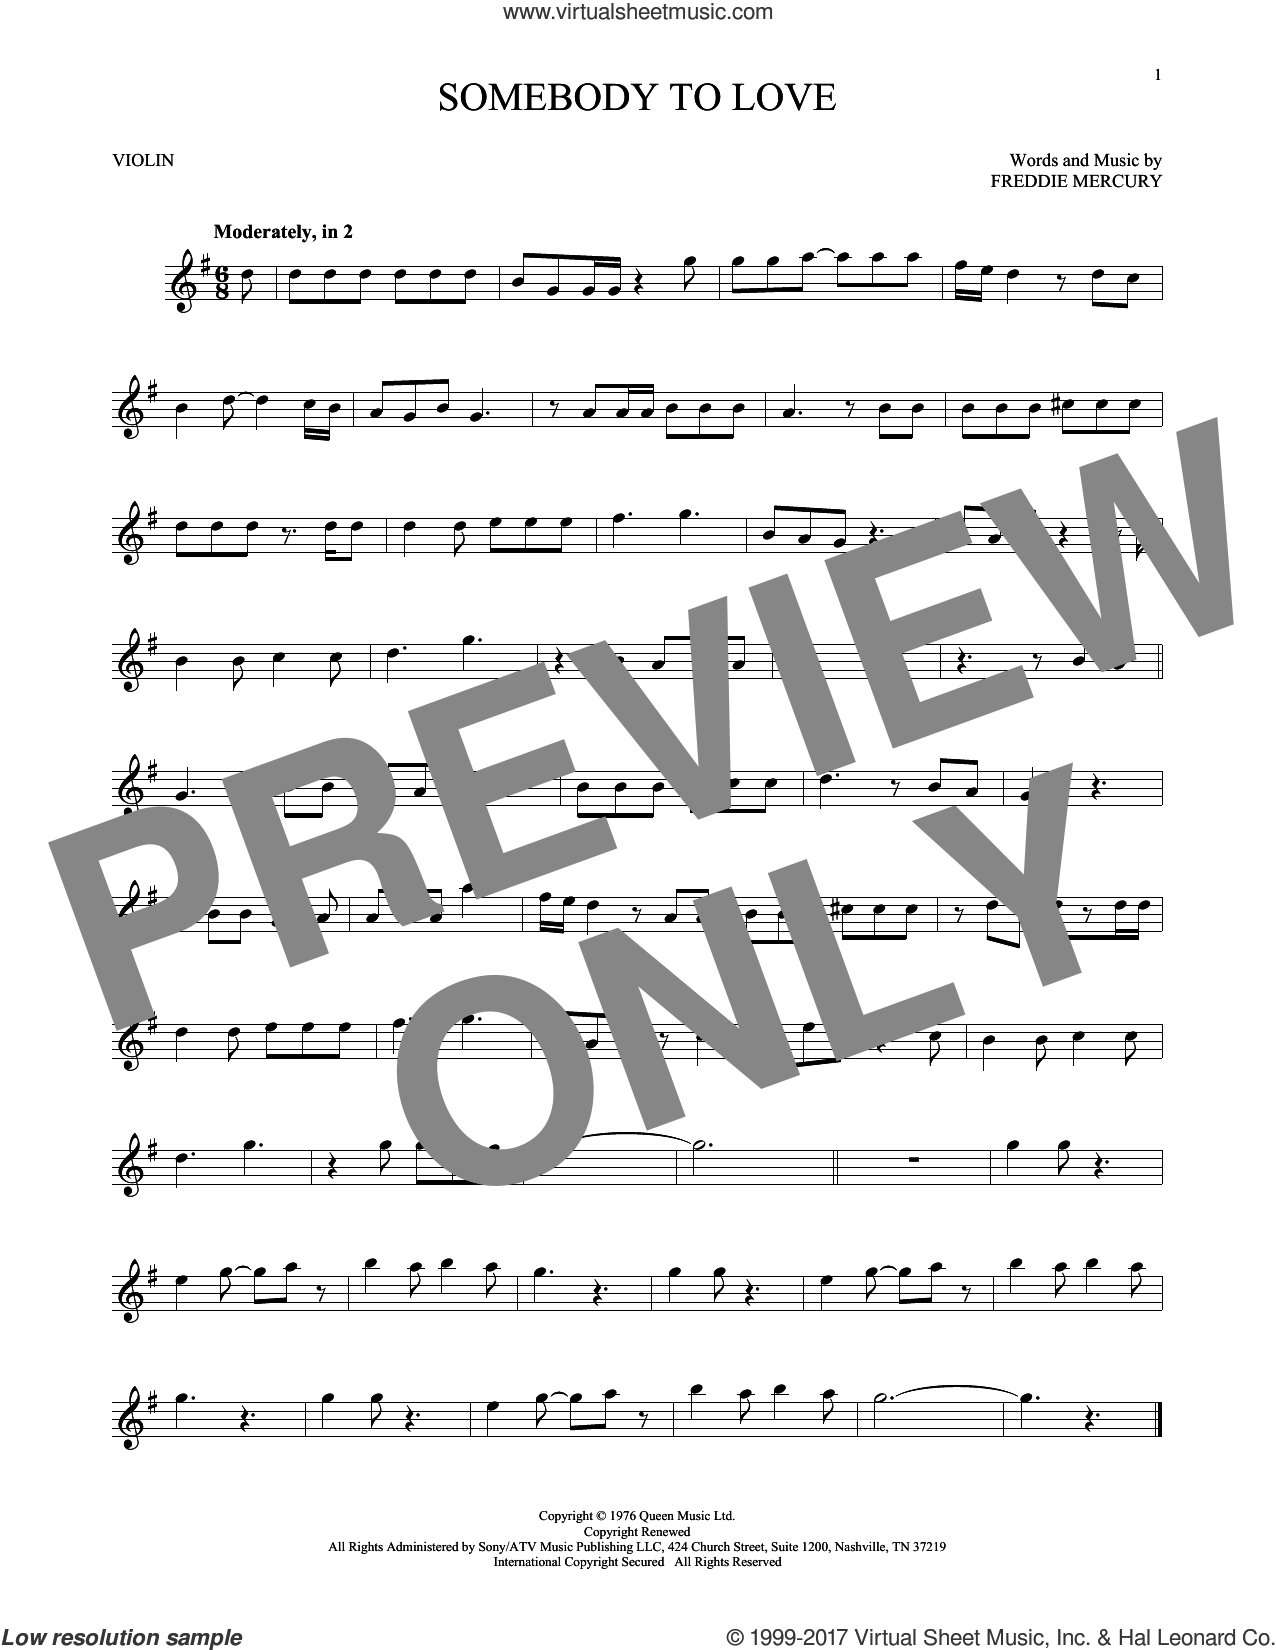 Somebody To Love sheet music for violin solo by Queen and Freddie Mercury, intermediate skill level